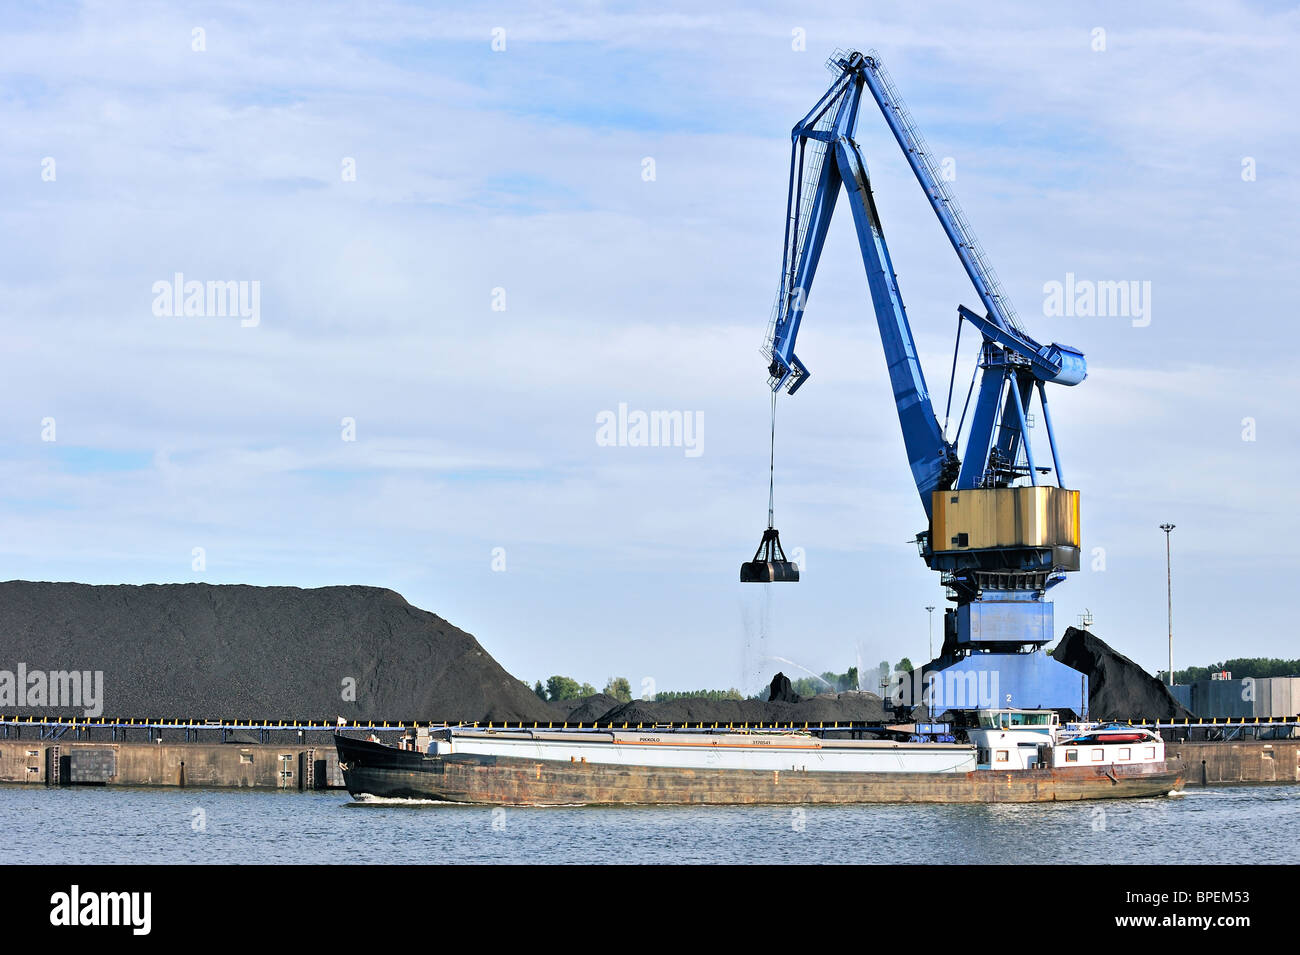 Dock crane loading coal / ore in inland vessel at Ghent seaport, Belgium - Stock Image